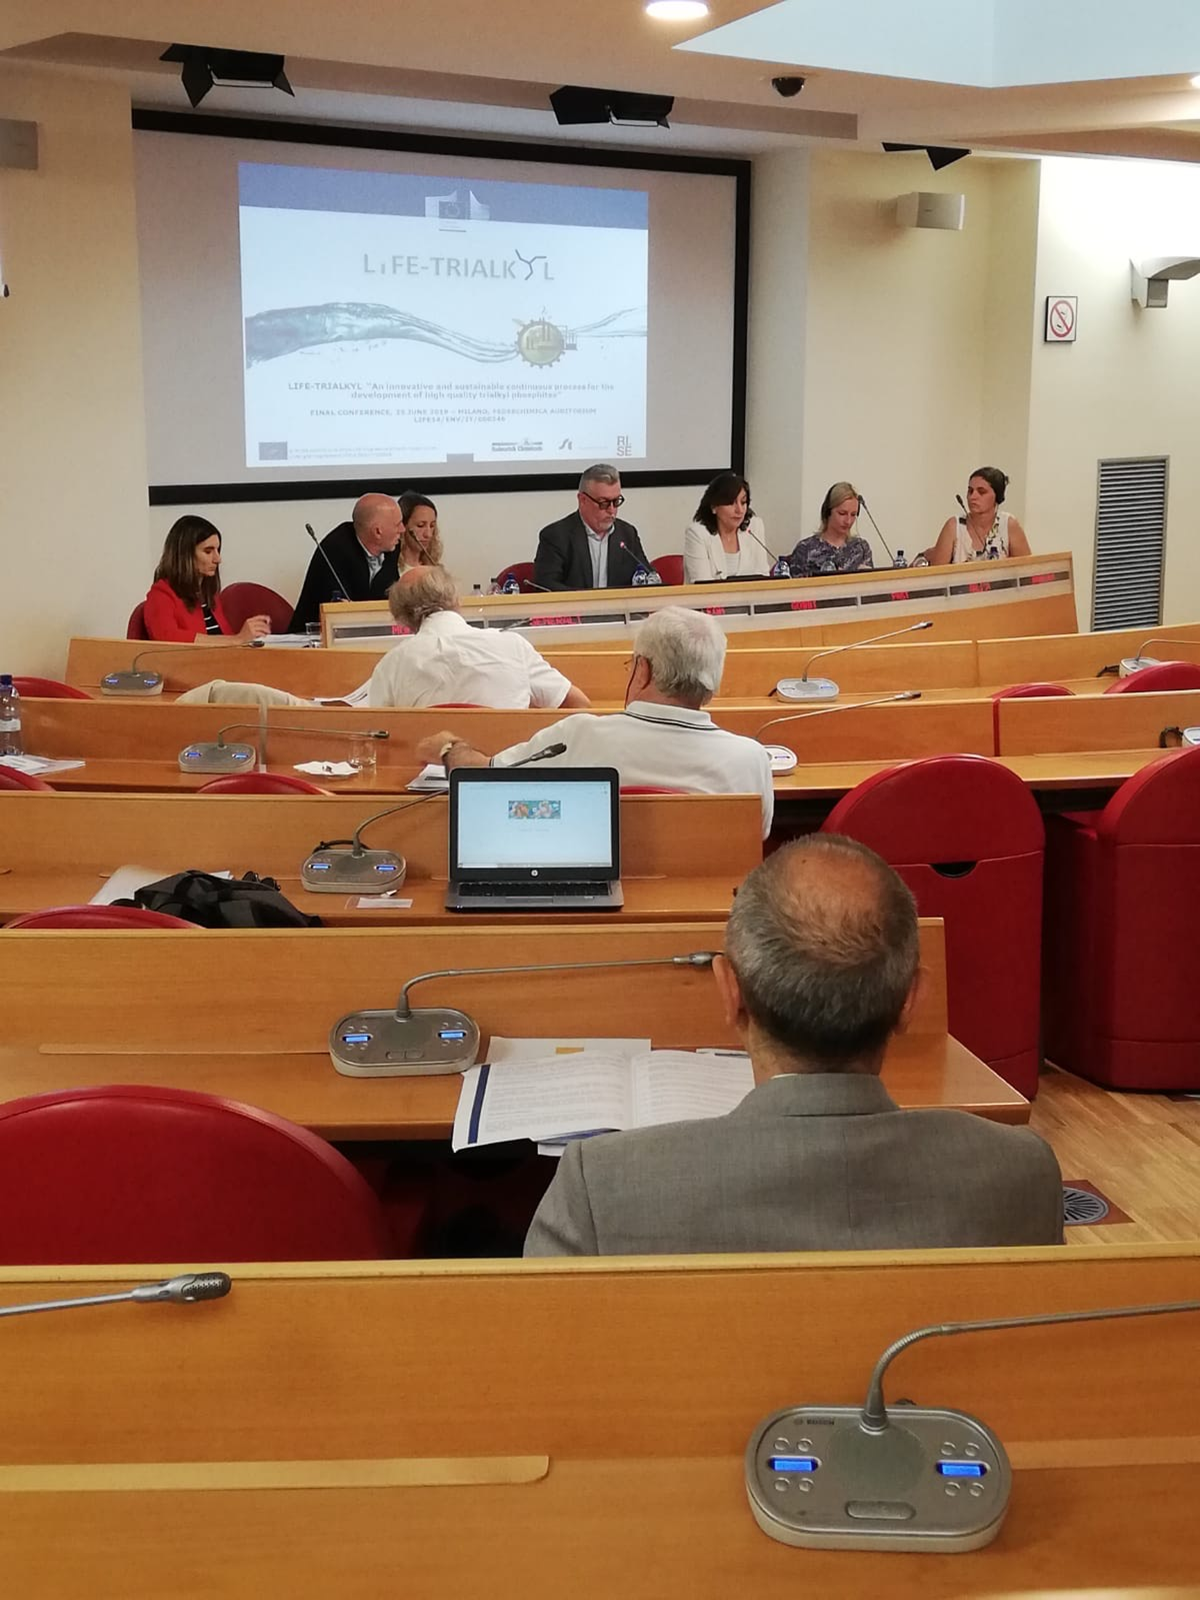 LIFE-Trialkyl Final Conference (2)